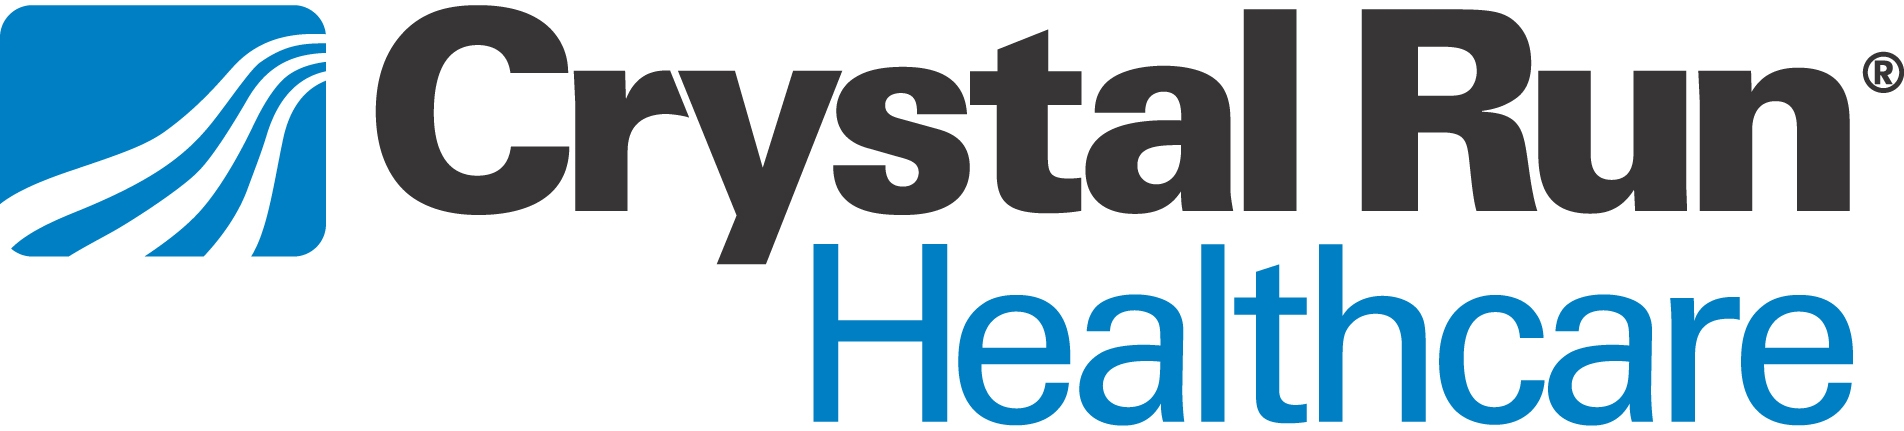 Crystal Run Healthcare LLP